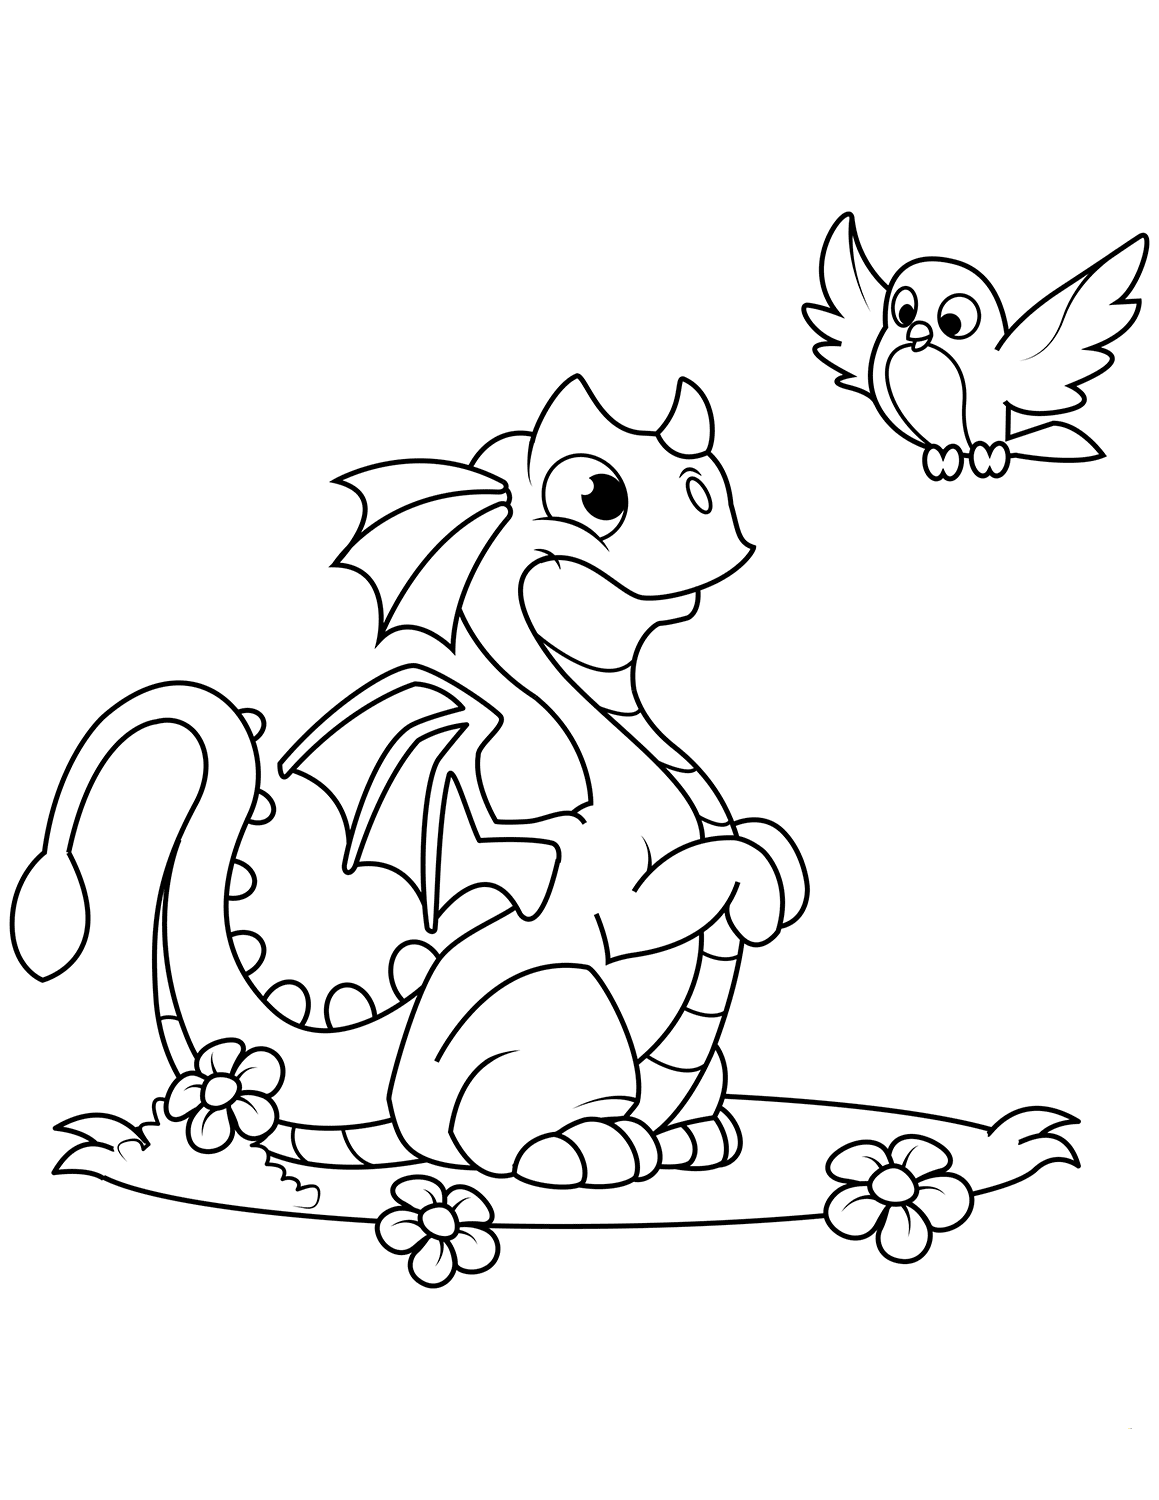 dragon colouring pictures printable dragon coloring pages for kids cool2bkids colouring pictures dragon